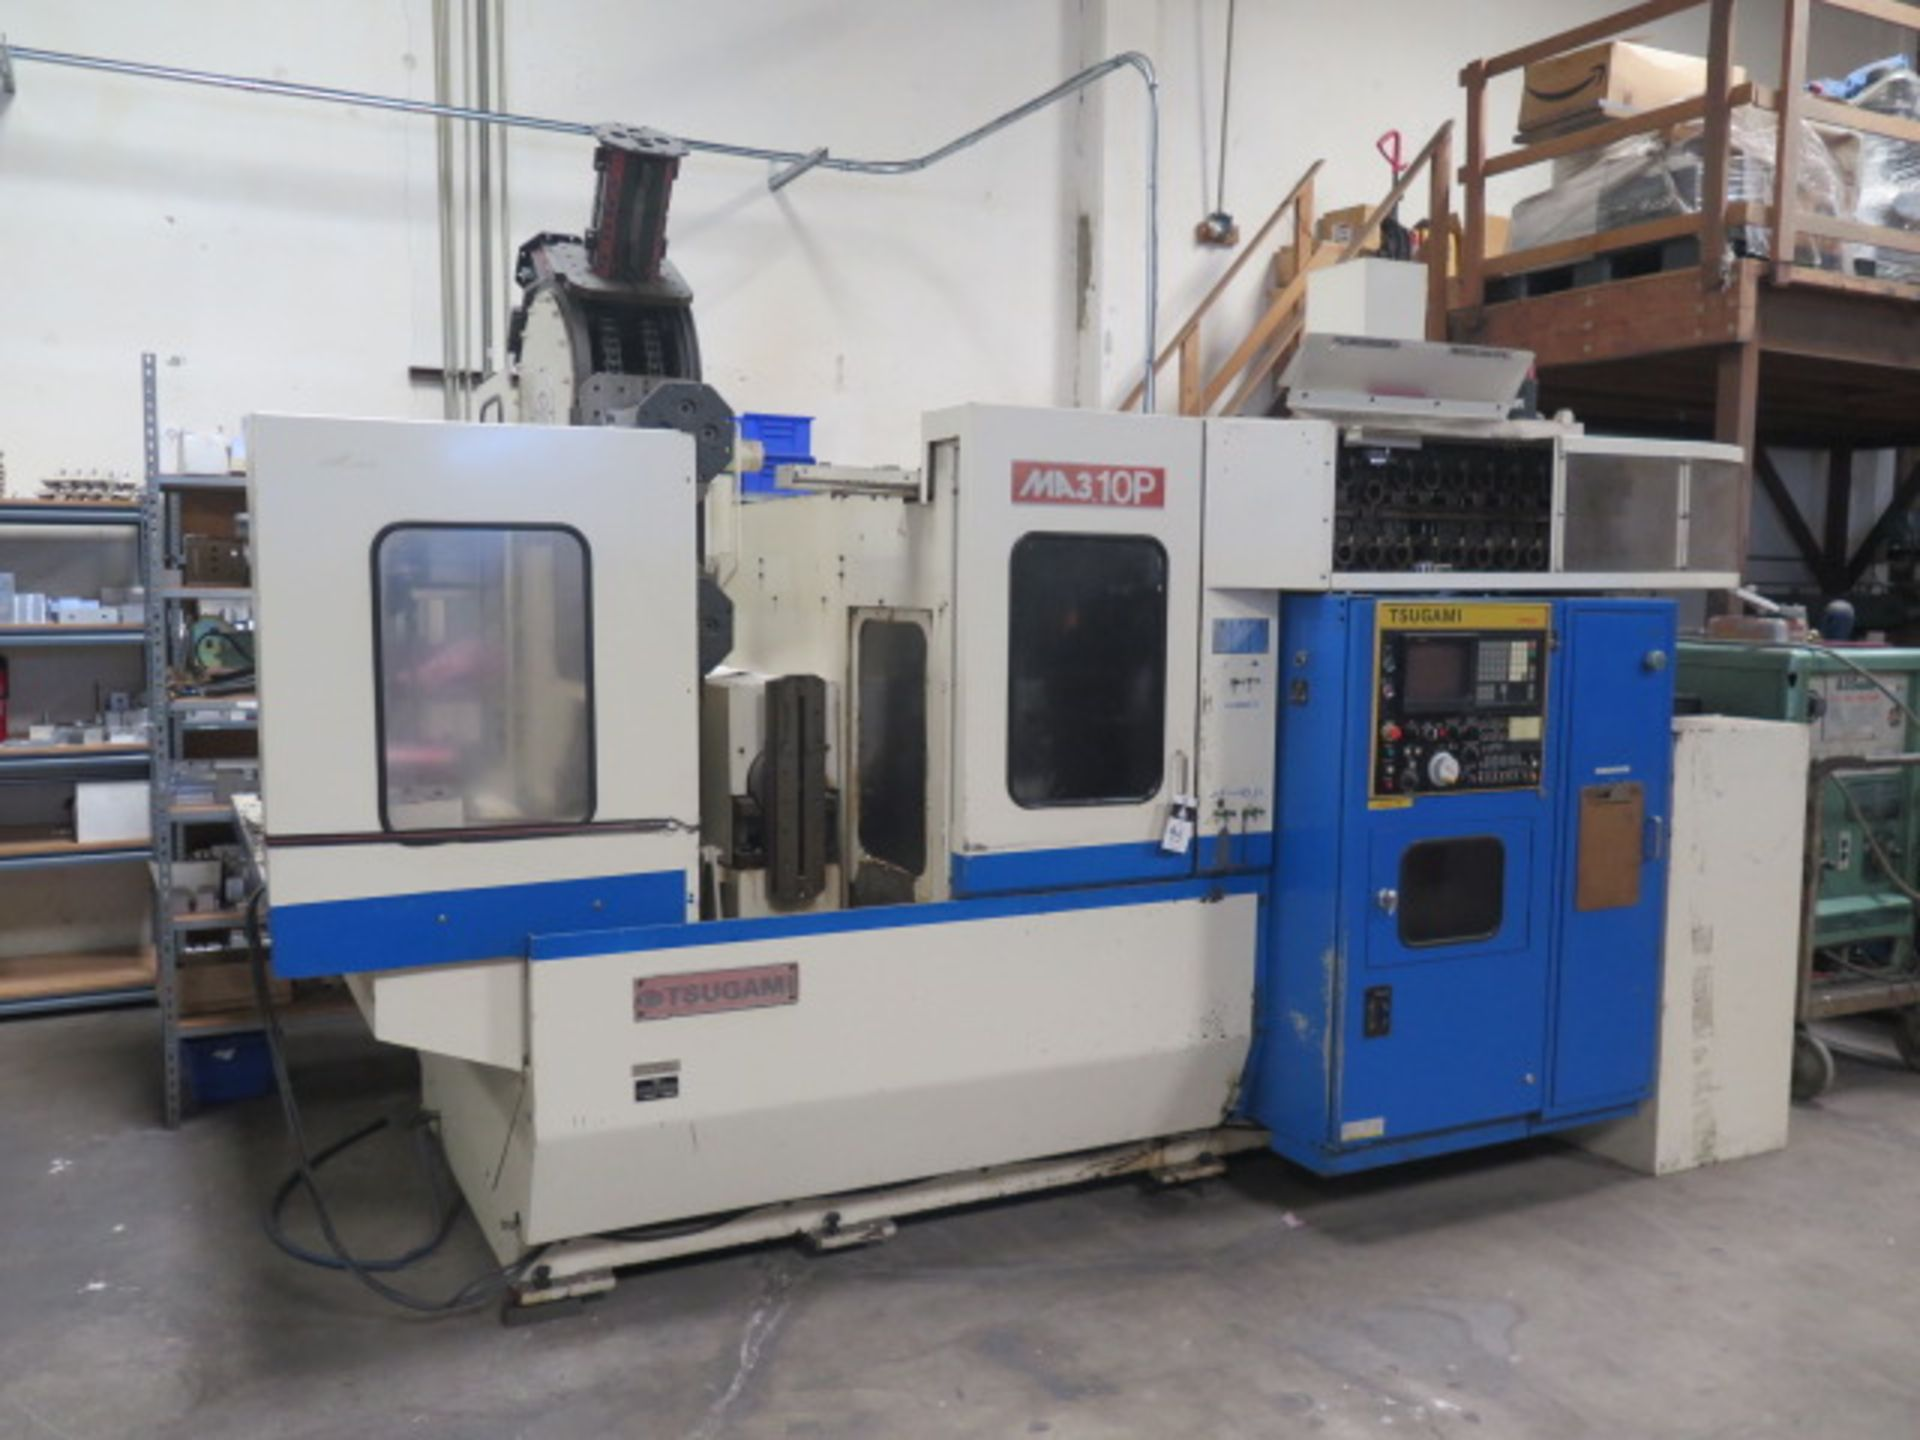 Tsugami MS3.10P Type MA3H 4-Axis 10-Pallet CNC HMC (HAS X-AXIS PROBLEM), SOLD AS IS